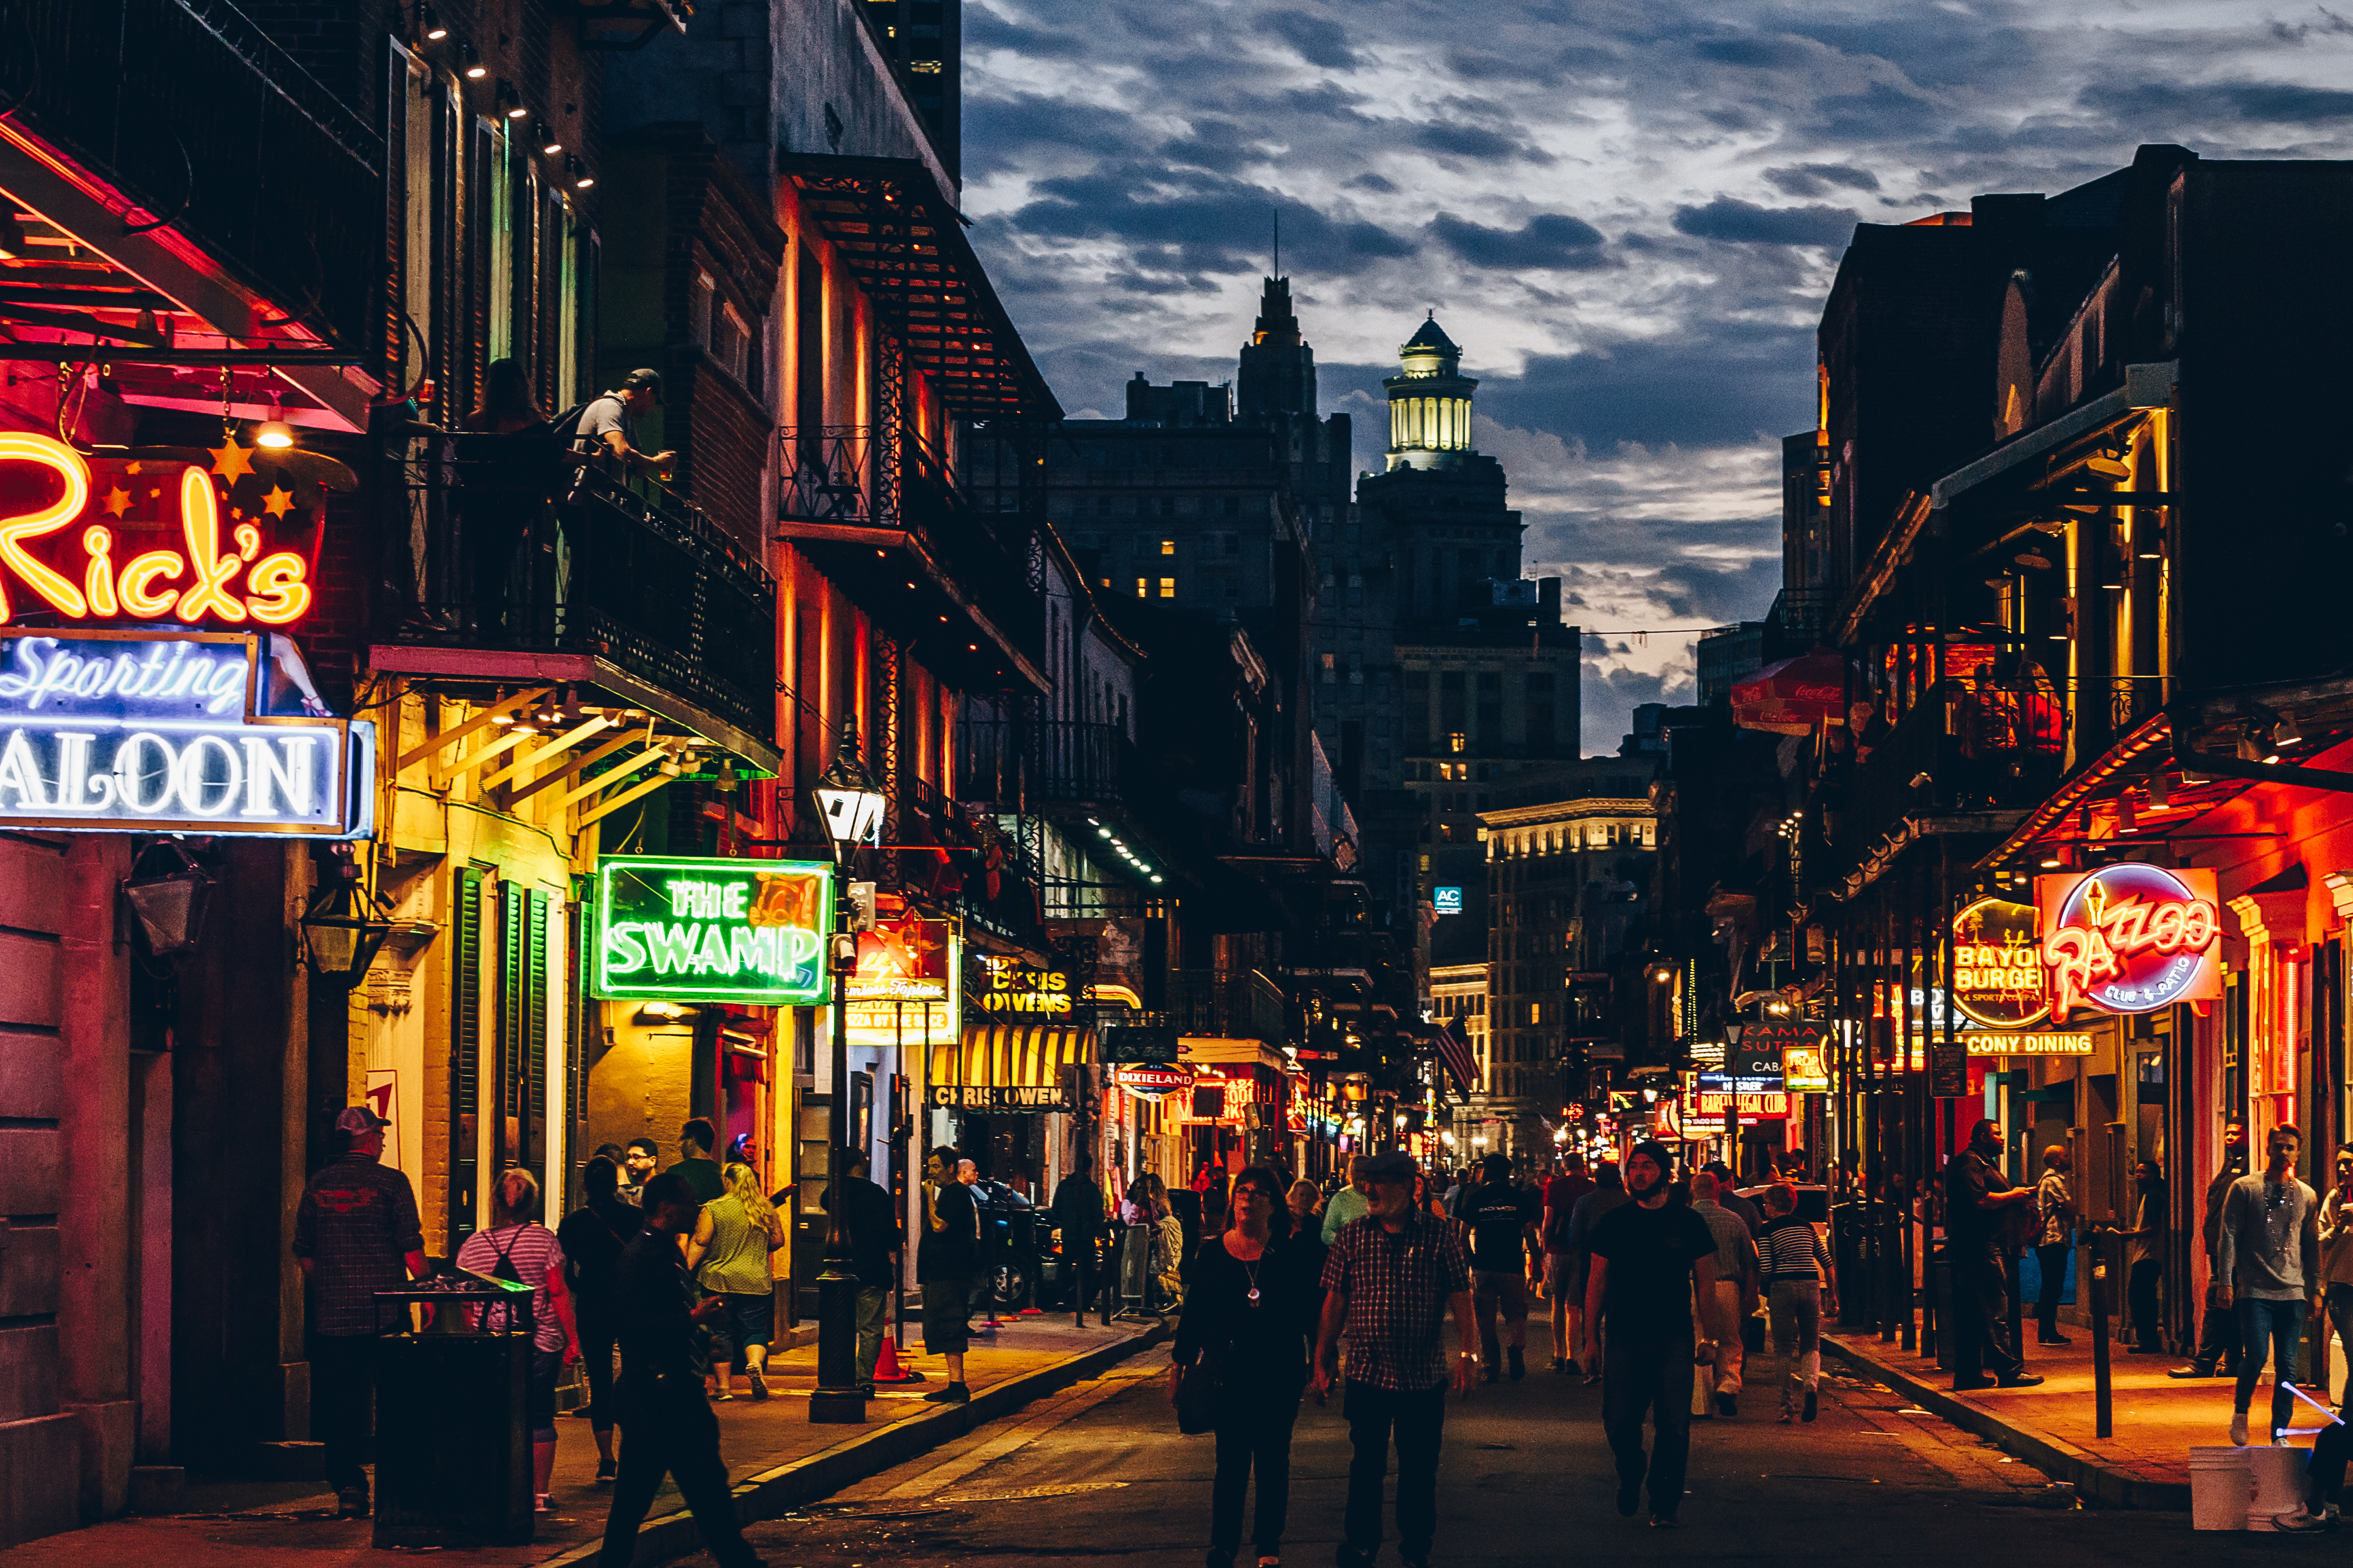 Wing_Hei_Emily_Cheng_Assignment_3_Travel_Photography_New_Orleans_Neon_Lights-1